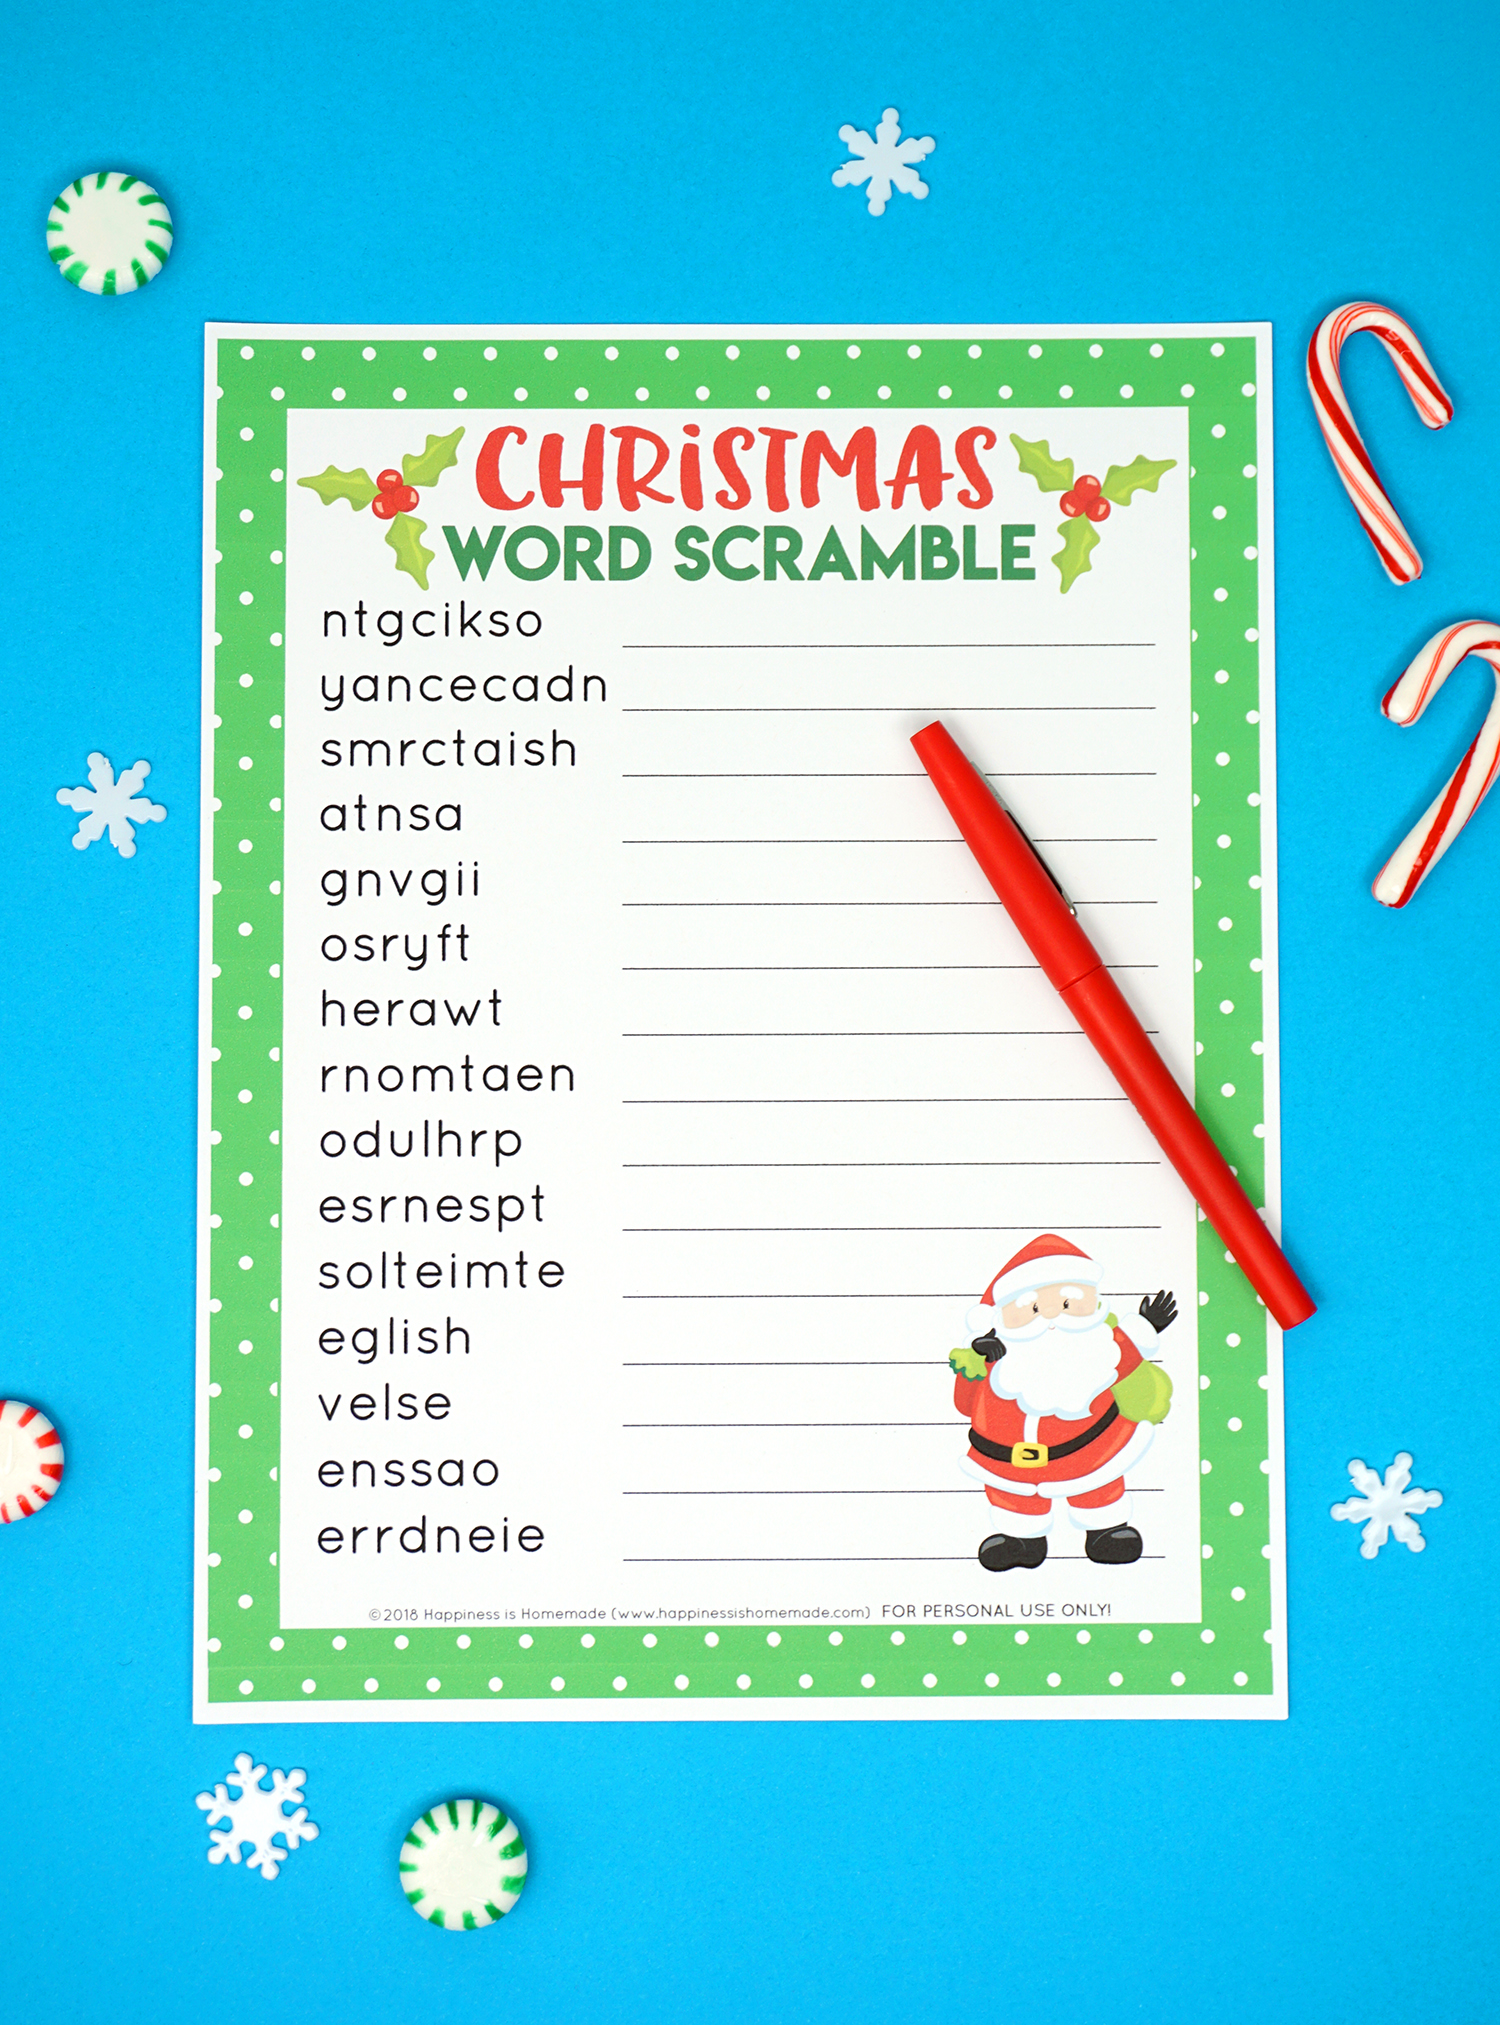 Exceptional image pertaining to christmas word scramble printable